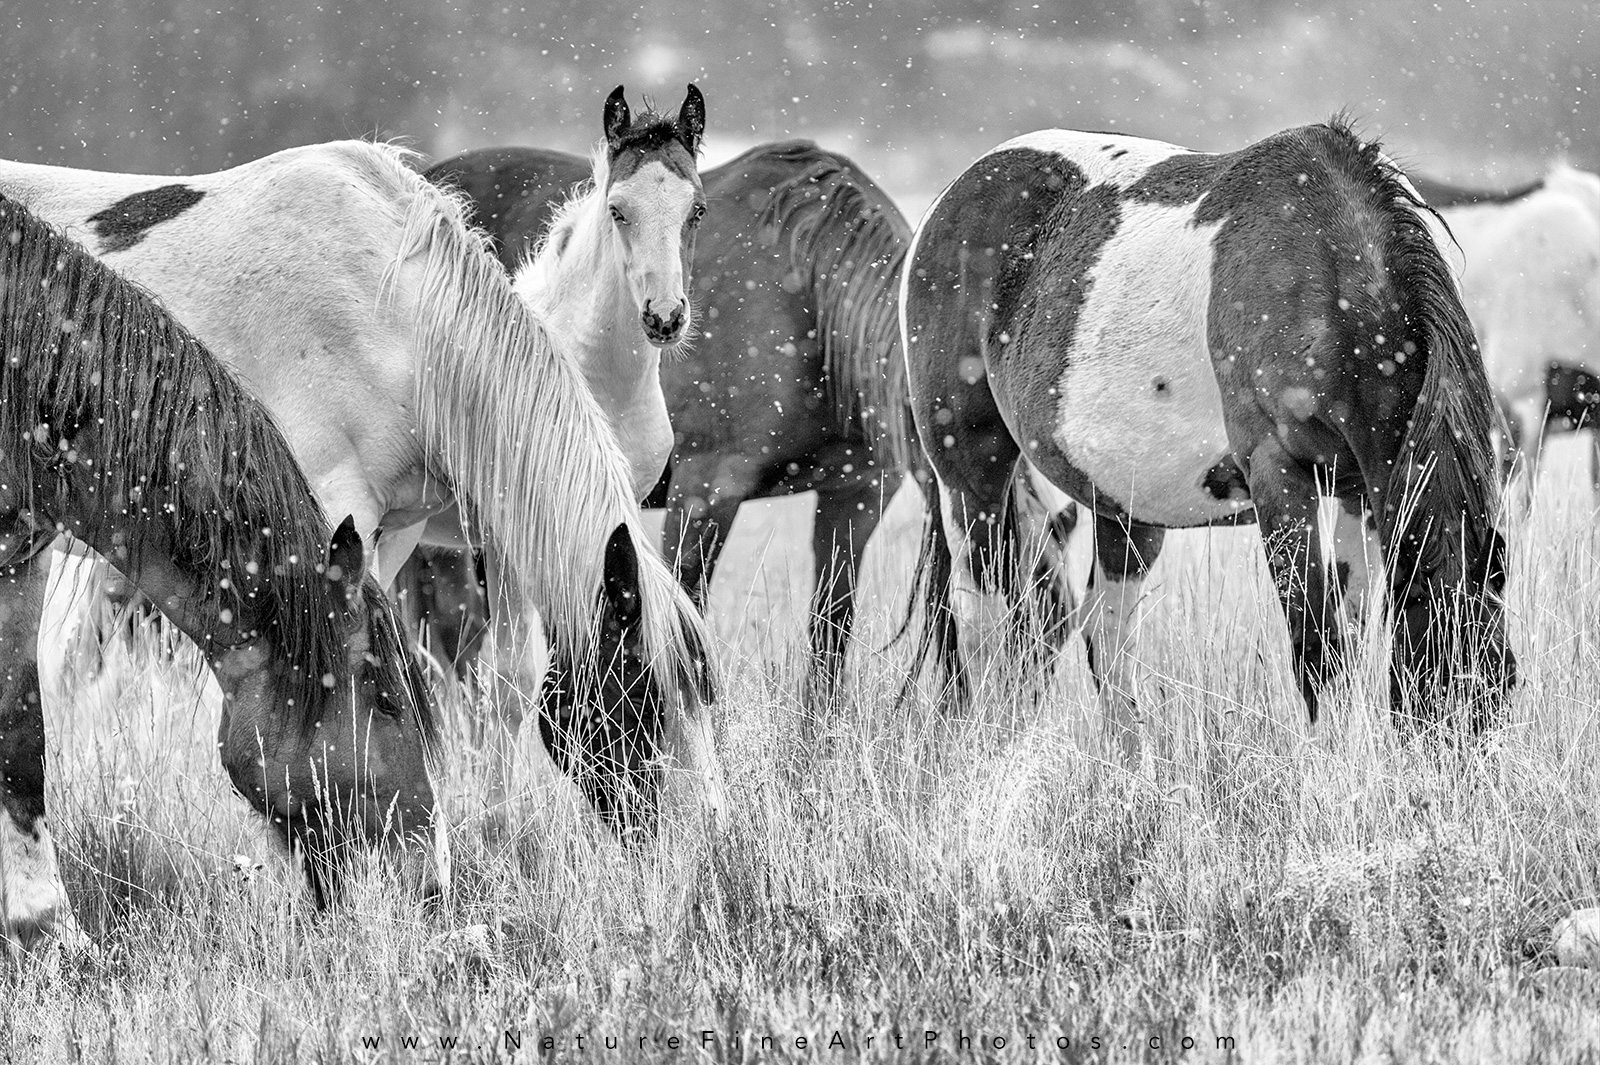 Wild Horse herd with alert baby horse Photo